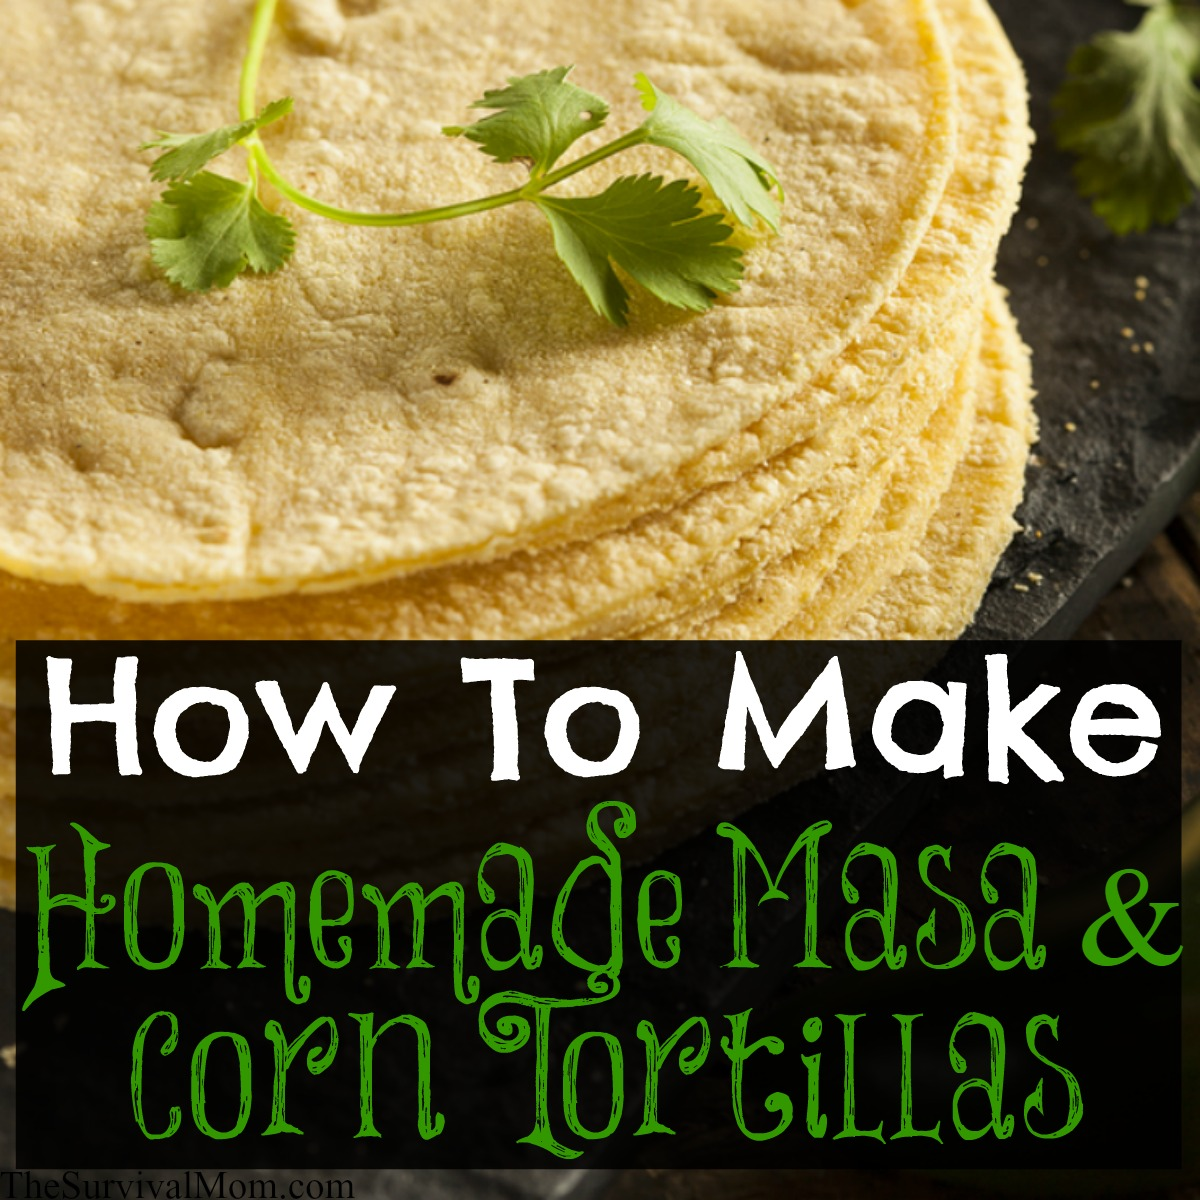 How to Make Homemade Masa & Corn Tortillas - Survival Mom